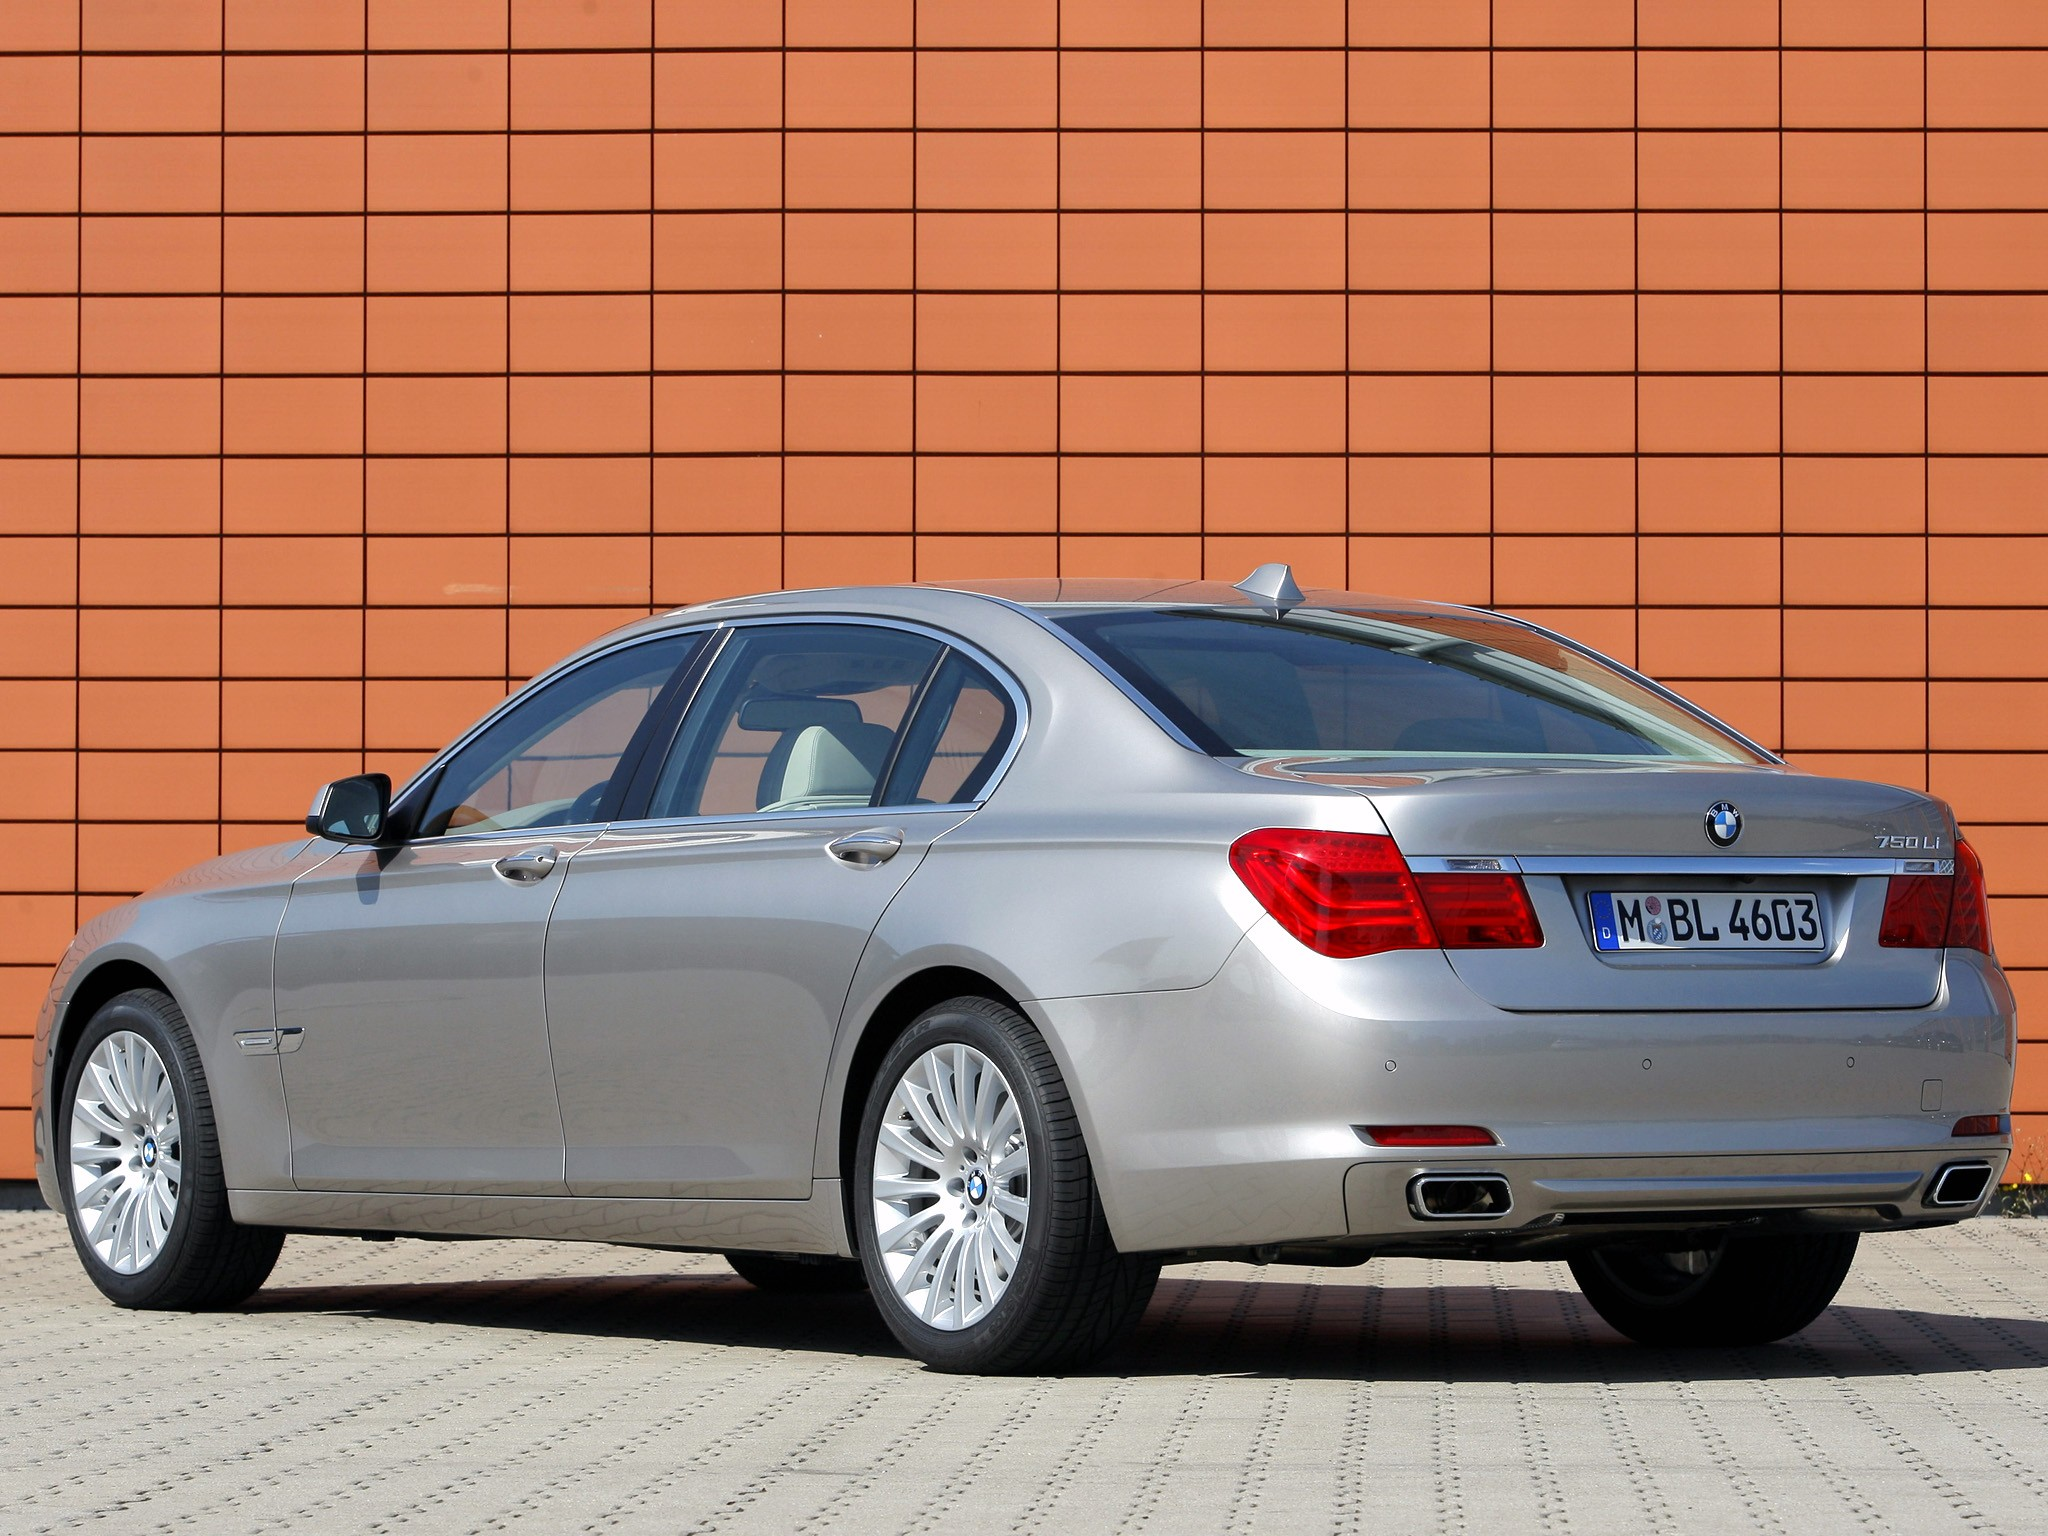 bmw 7 series f01 02 specs photos 2008 2009 2010. Black Bedroom Furniture Sets. Home Design Ideas